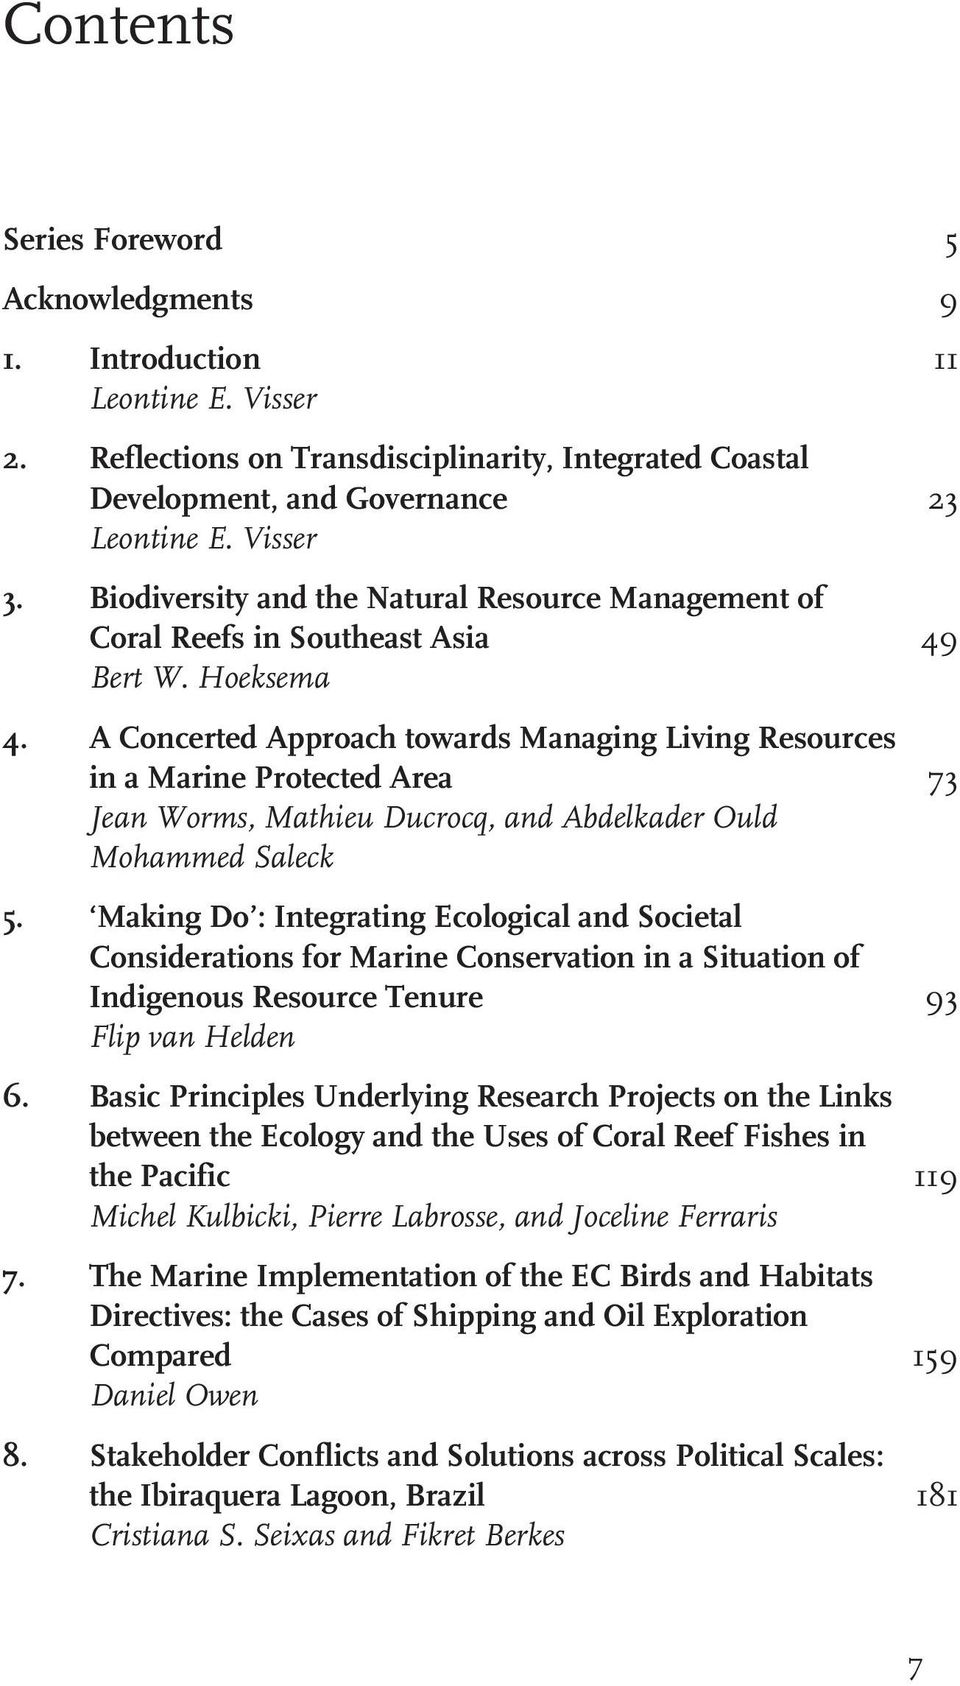 A Concerted Approach towards Managing Living Resources in a Marine Protected Area 73 Jean Worms, Mathieu Ducrocq, and Abdelkader Ould Mohammed Saleck 5.